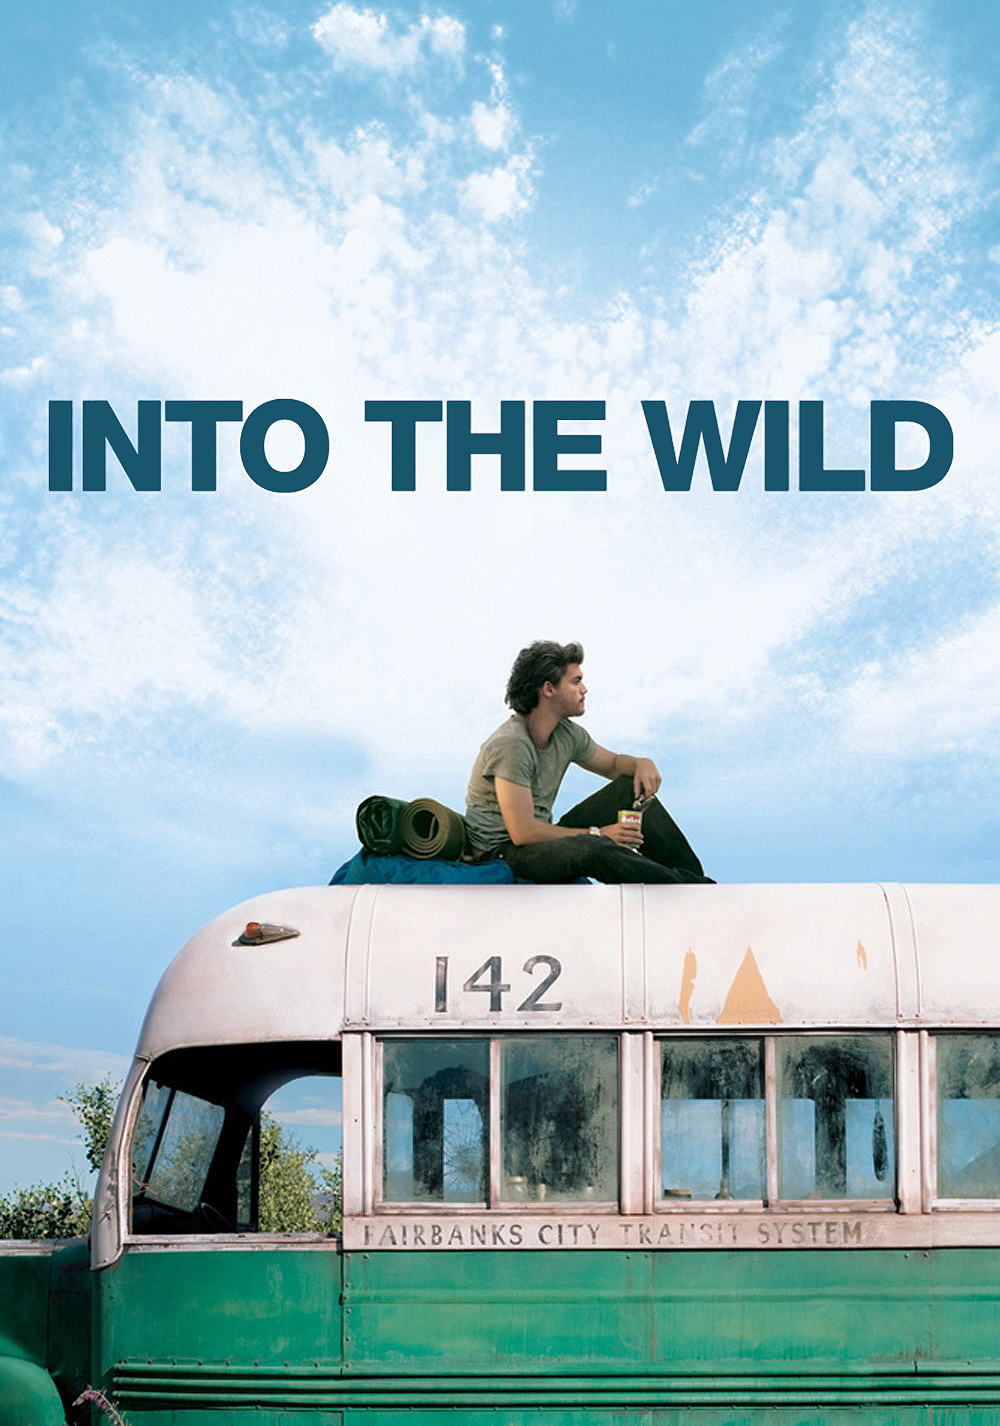 Into the wild gif on gifer by stareye.